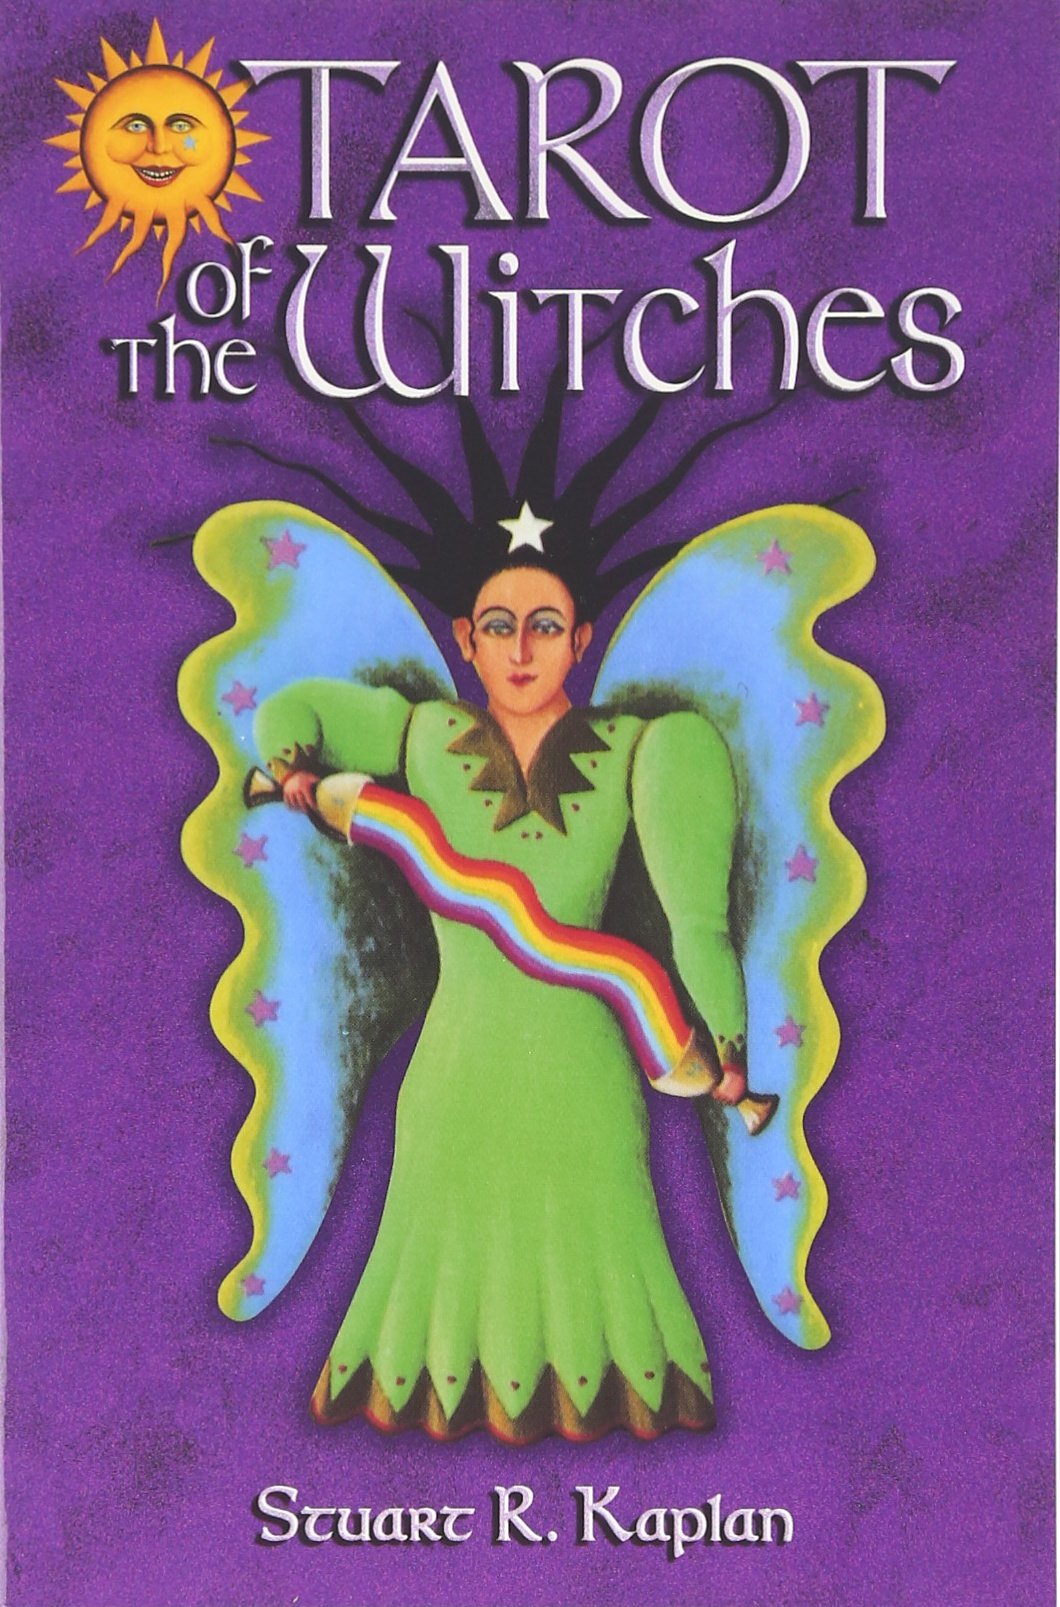 Download The Tarot of the Witches Book ebook